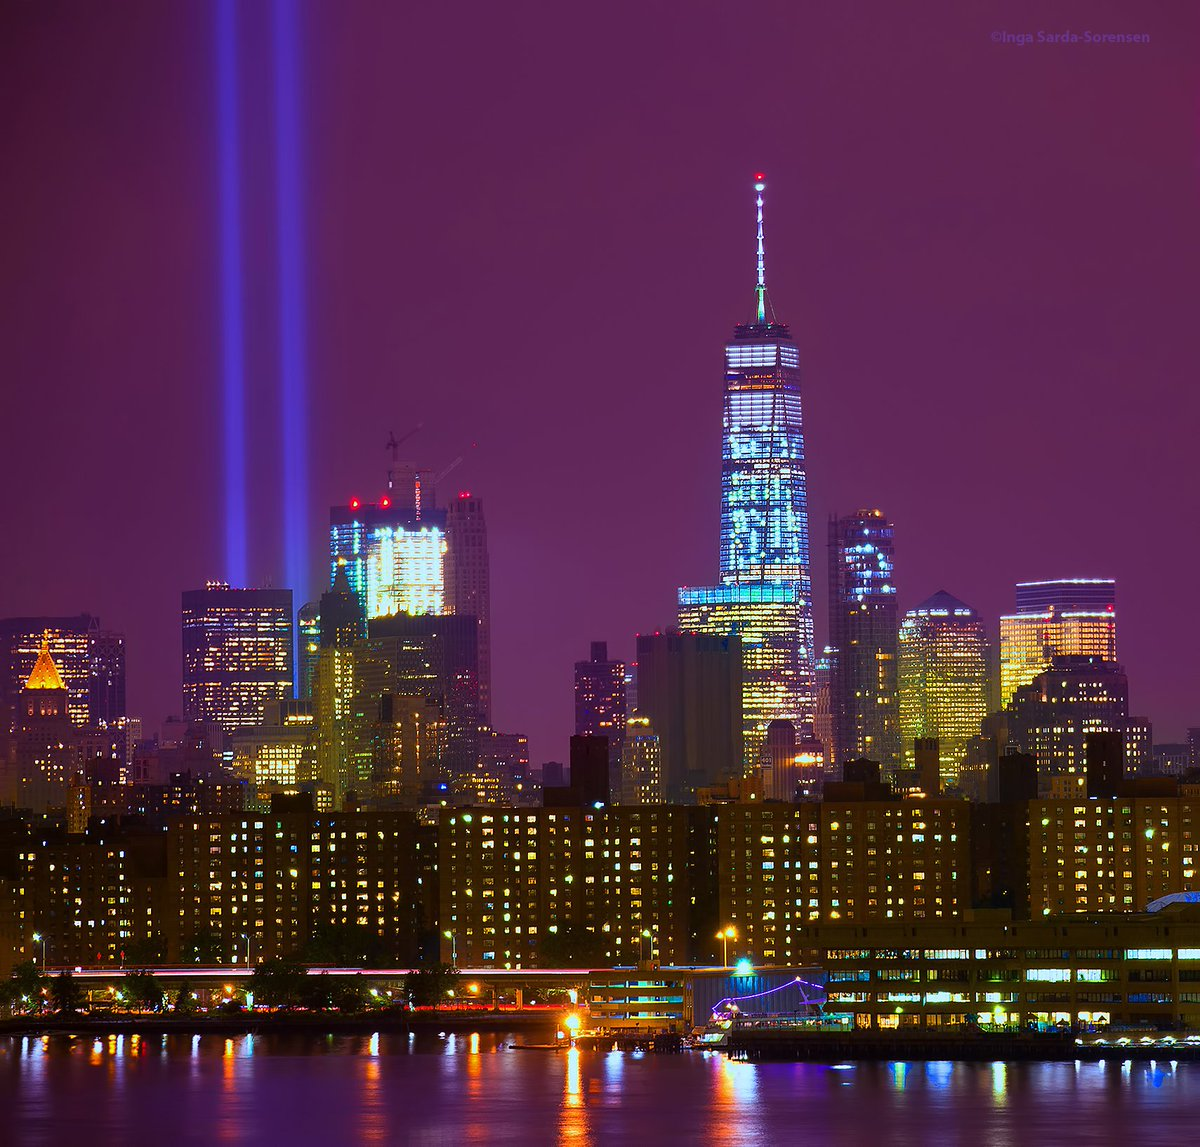 #TributeInLight test illuminates the sky near the World Trade Center tonight in NYC. #Sept11 #NeverForget<br>http://pic.twitter.com/N72oxkEhnH